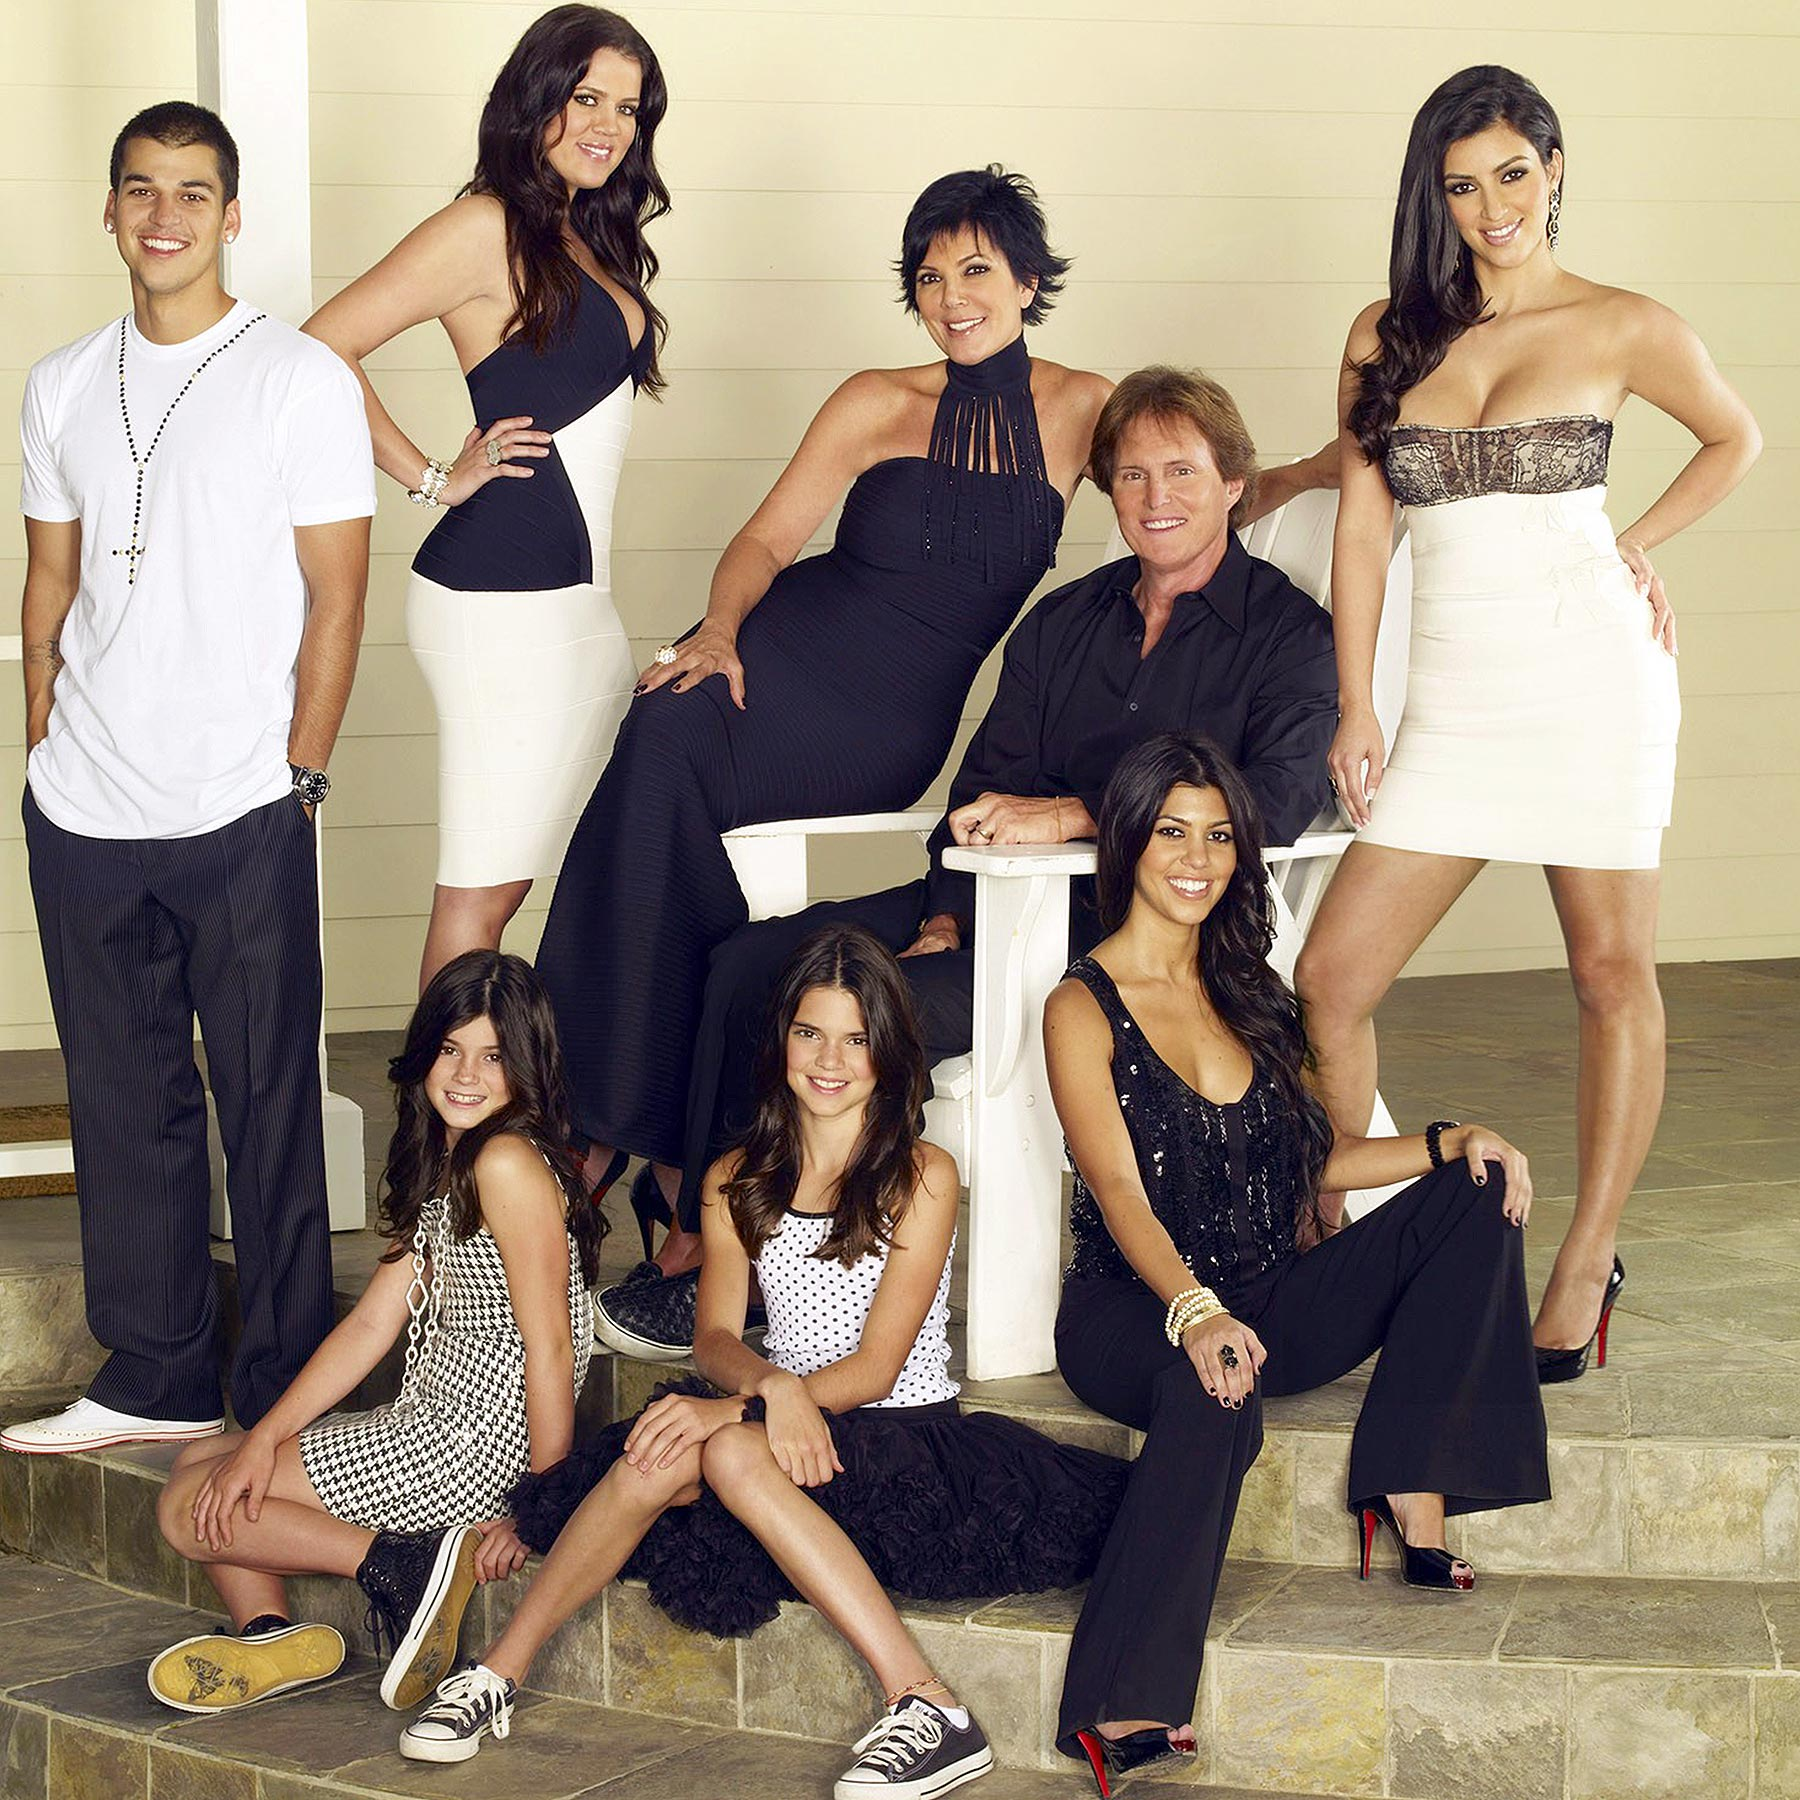 KEEPING UP WITH THE KARDASHIANS, (back row, from left): Robert Kardashian Jr., Khloe Kardashian, Kri